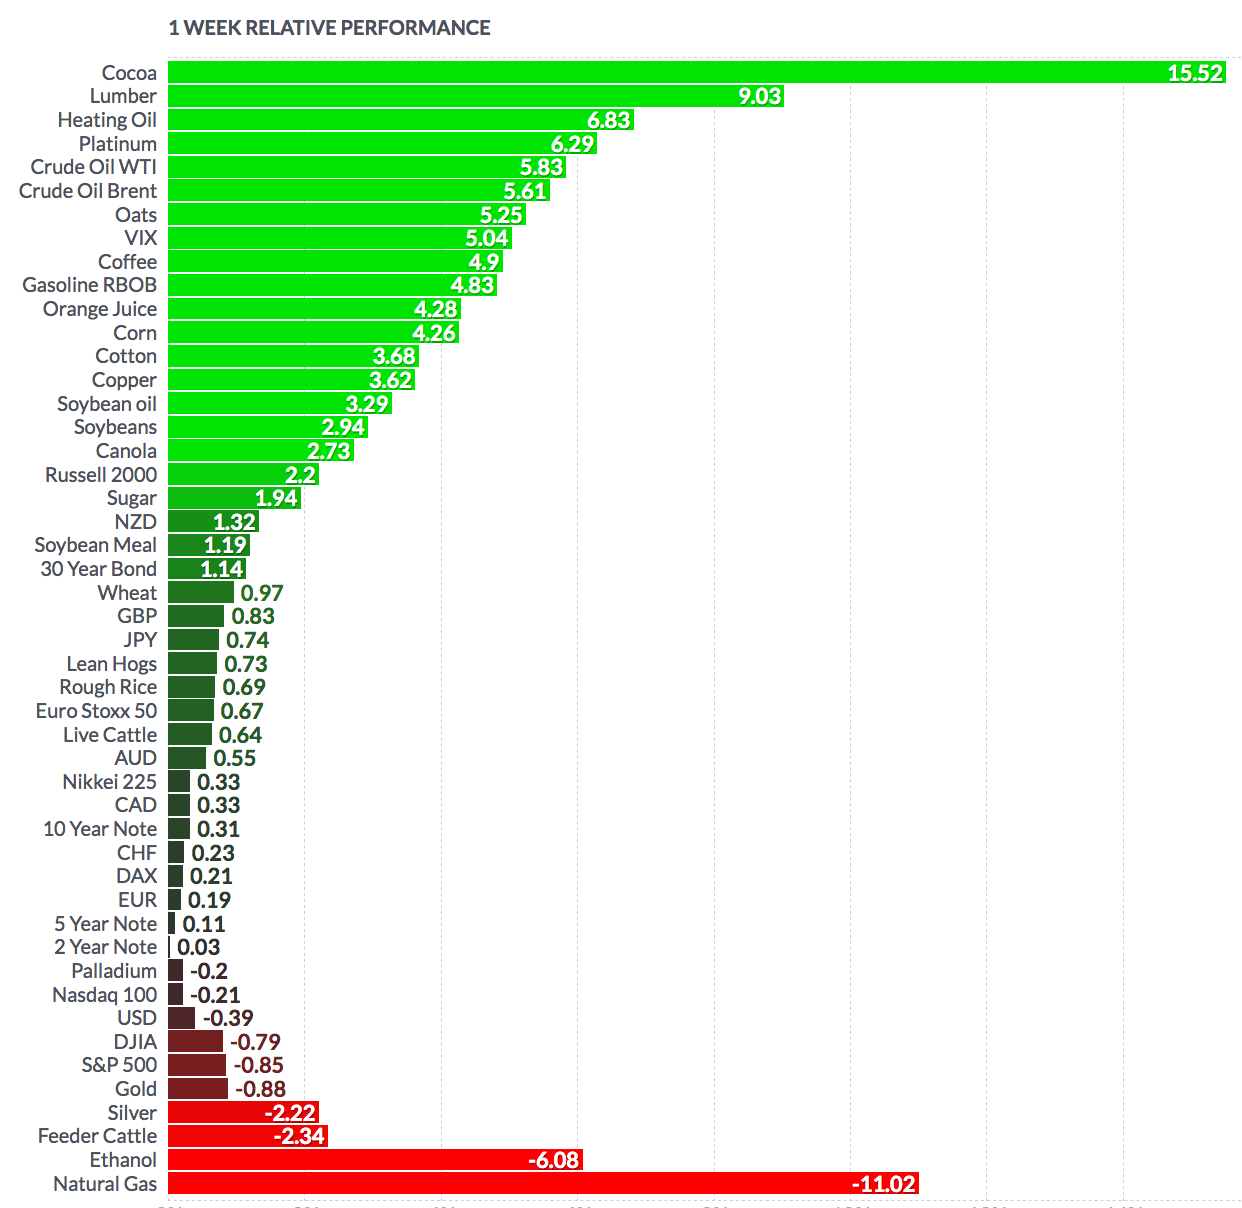 Futures Weekly Performance